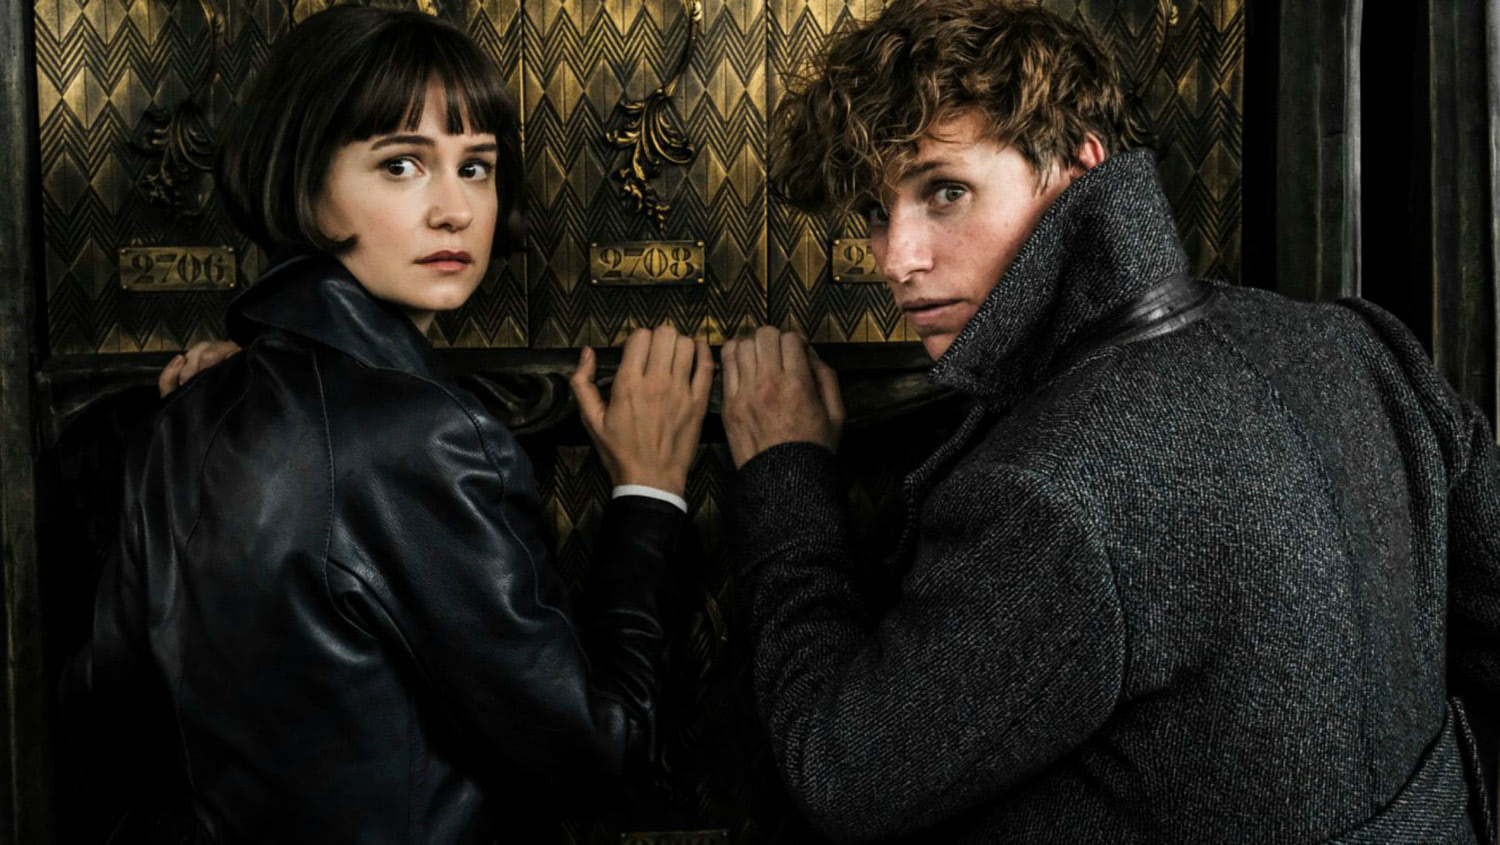 Tina and Newt hide in the French Ministry